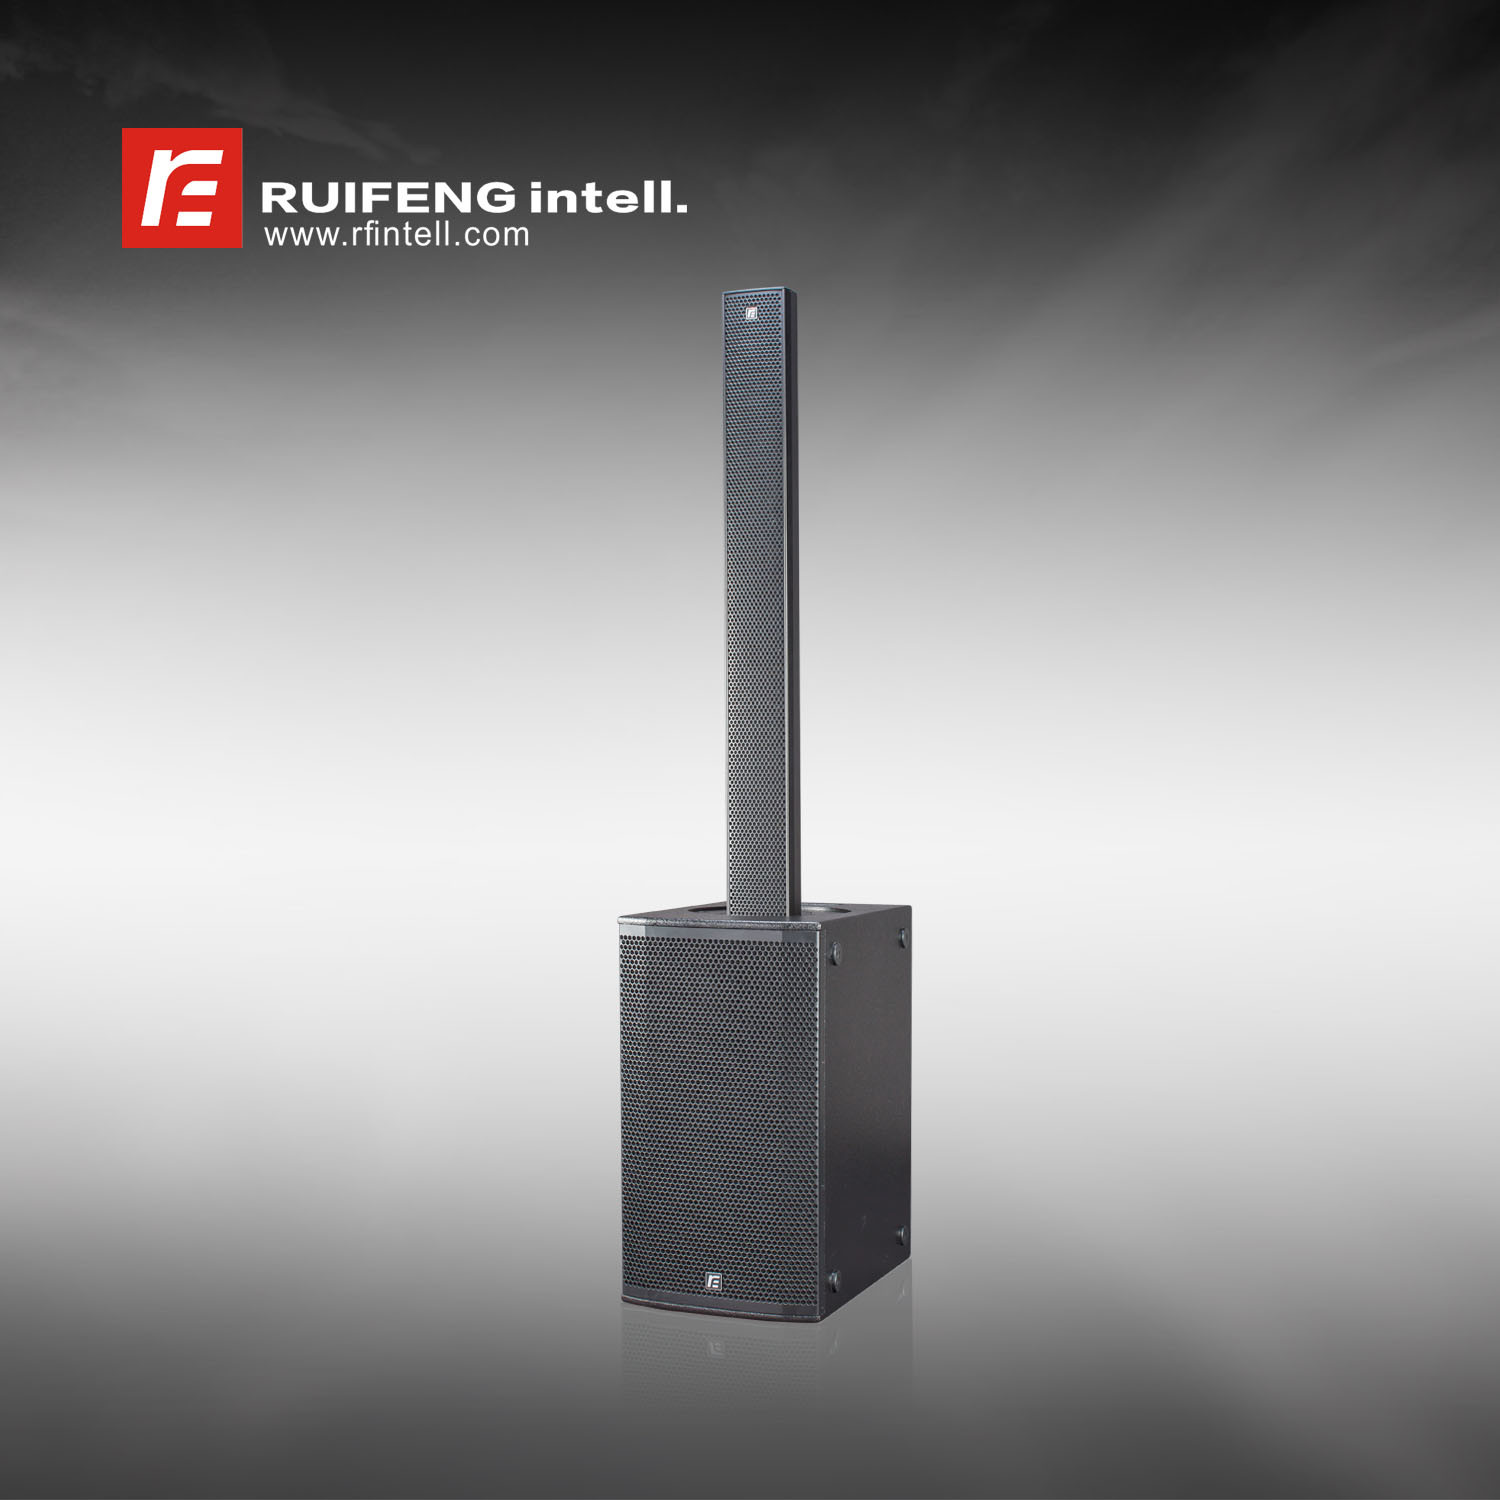 China Sound System For Conference Room, Sound System For Conference Room  Manufacturers, Suppliers, Price | Made-in-China com